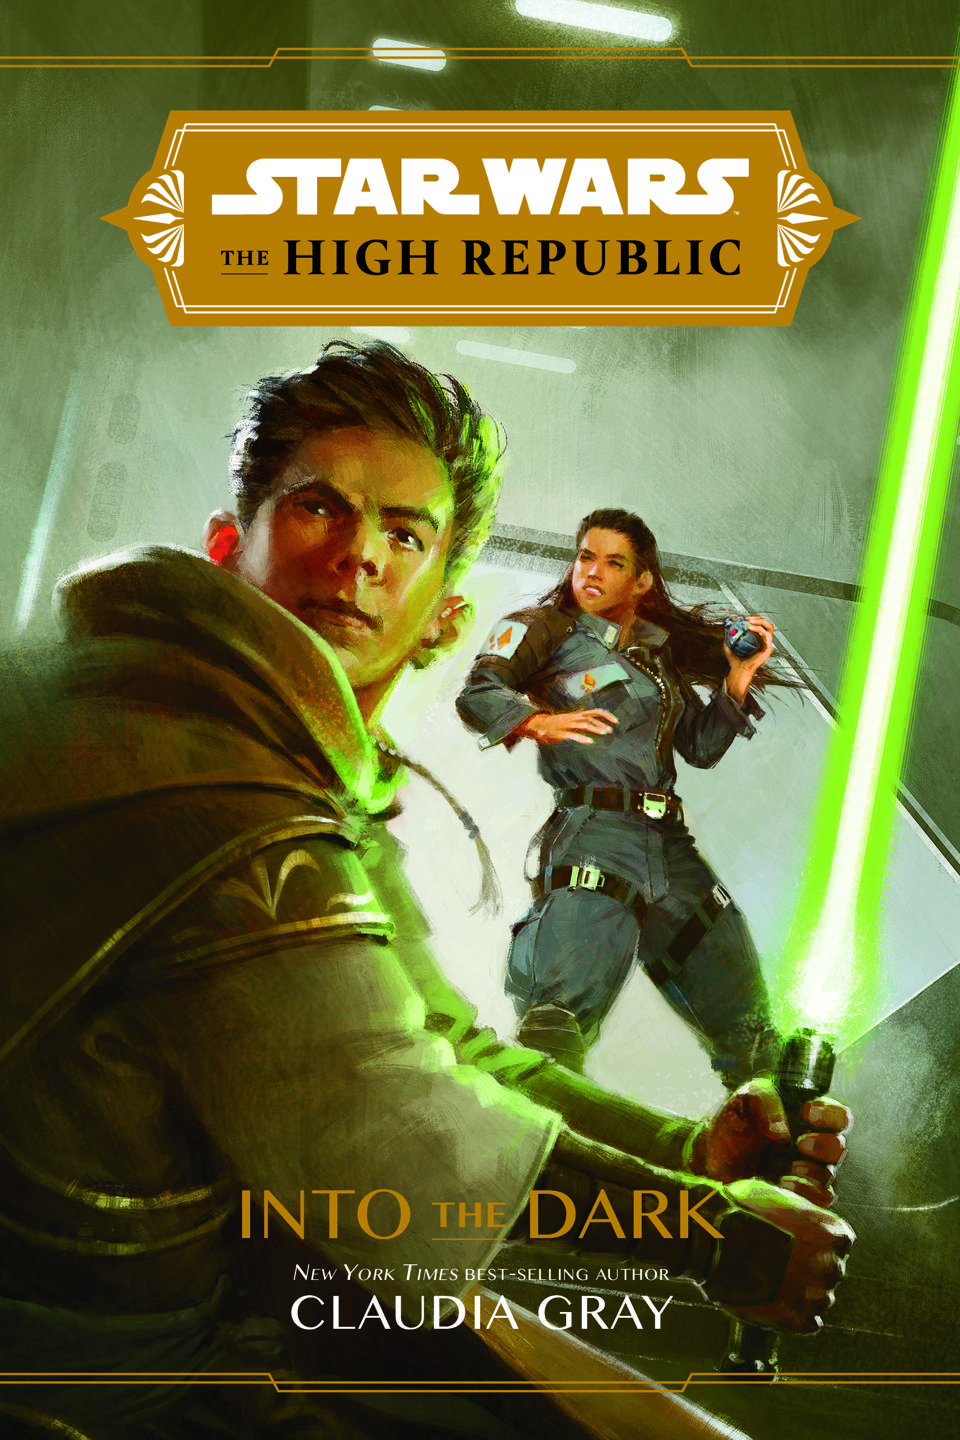 Book cover with one boy holding a lightsaber and one girl in the background.